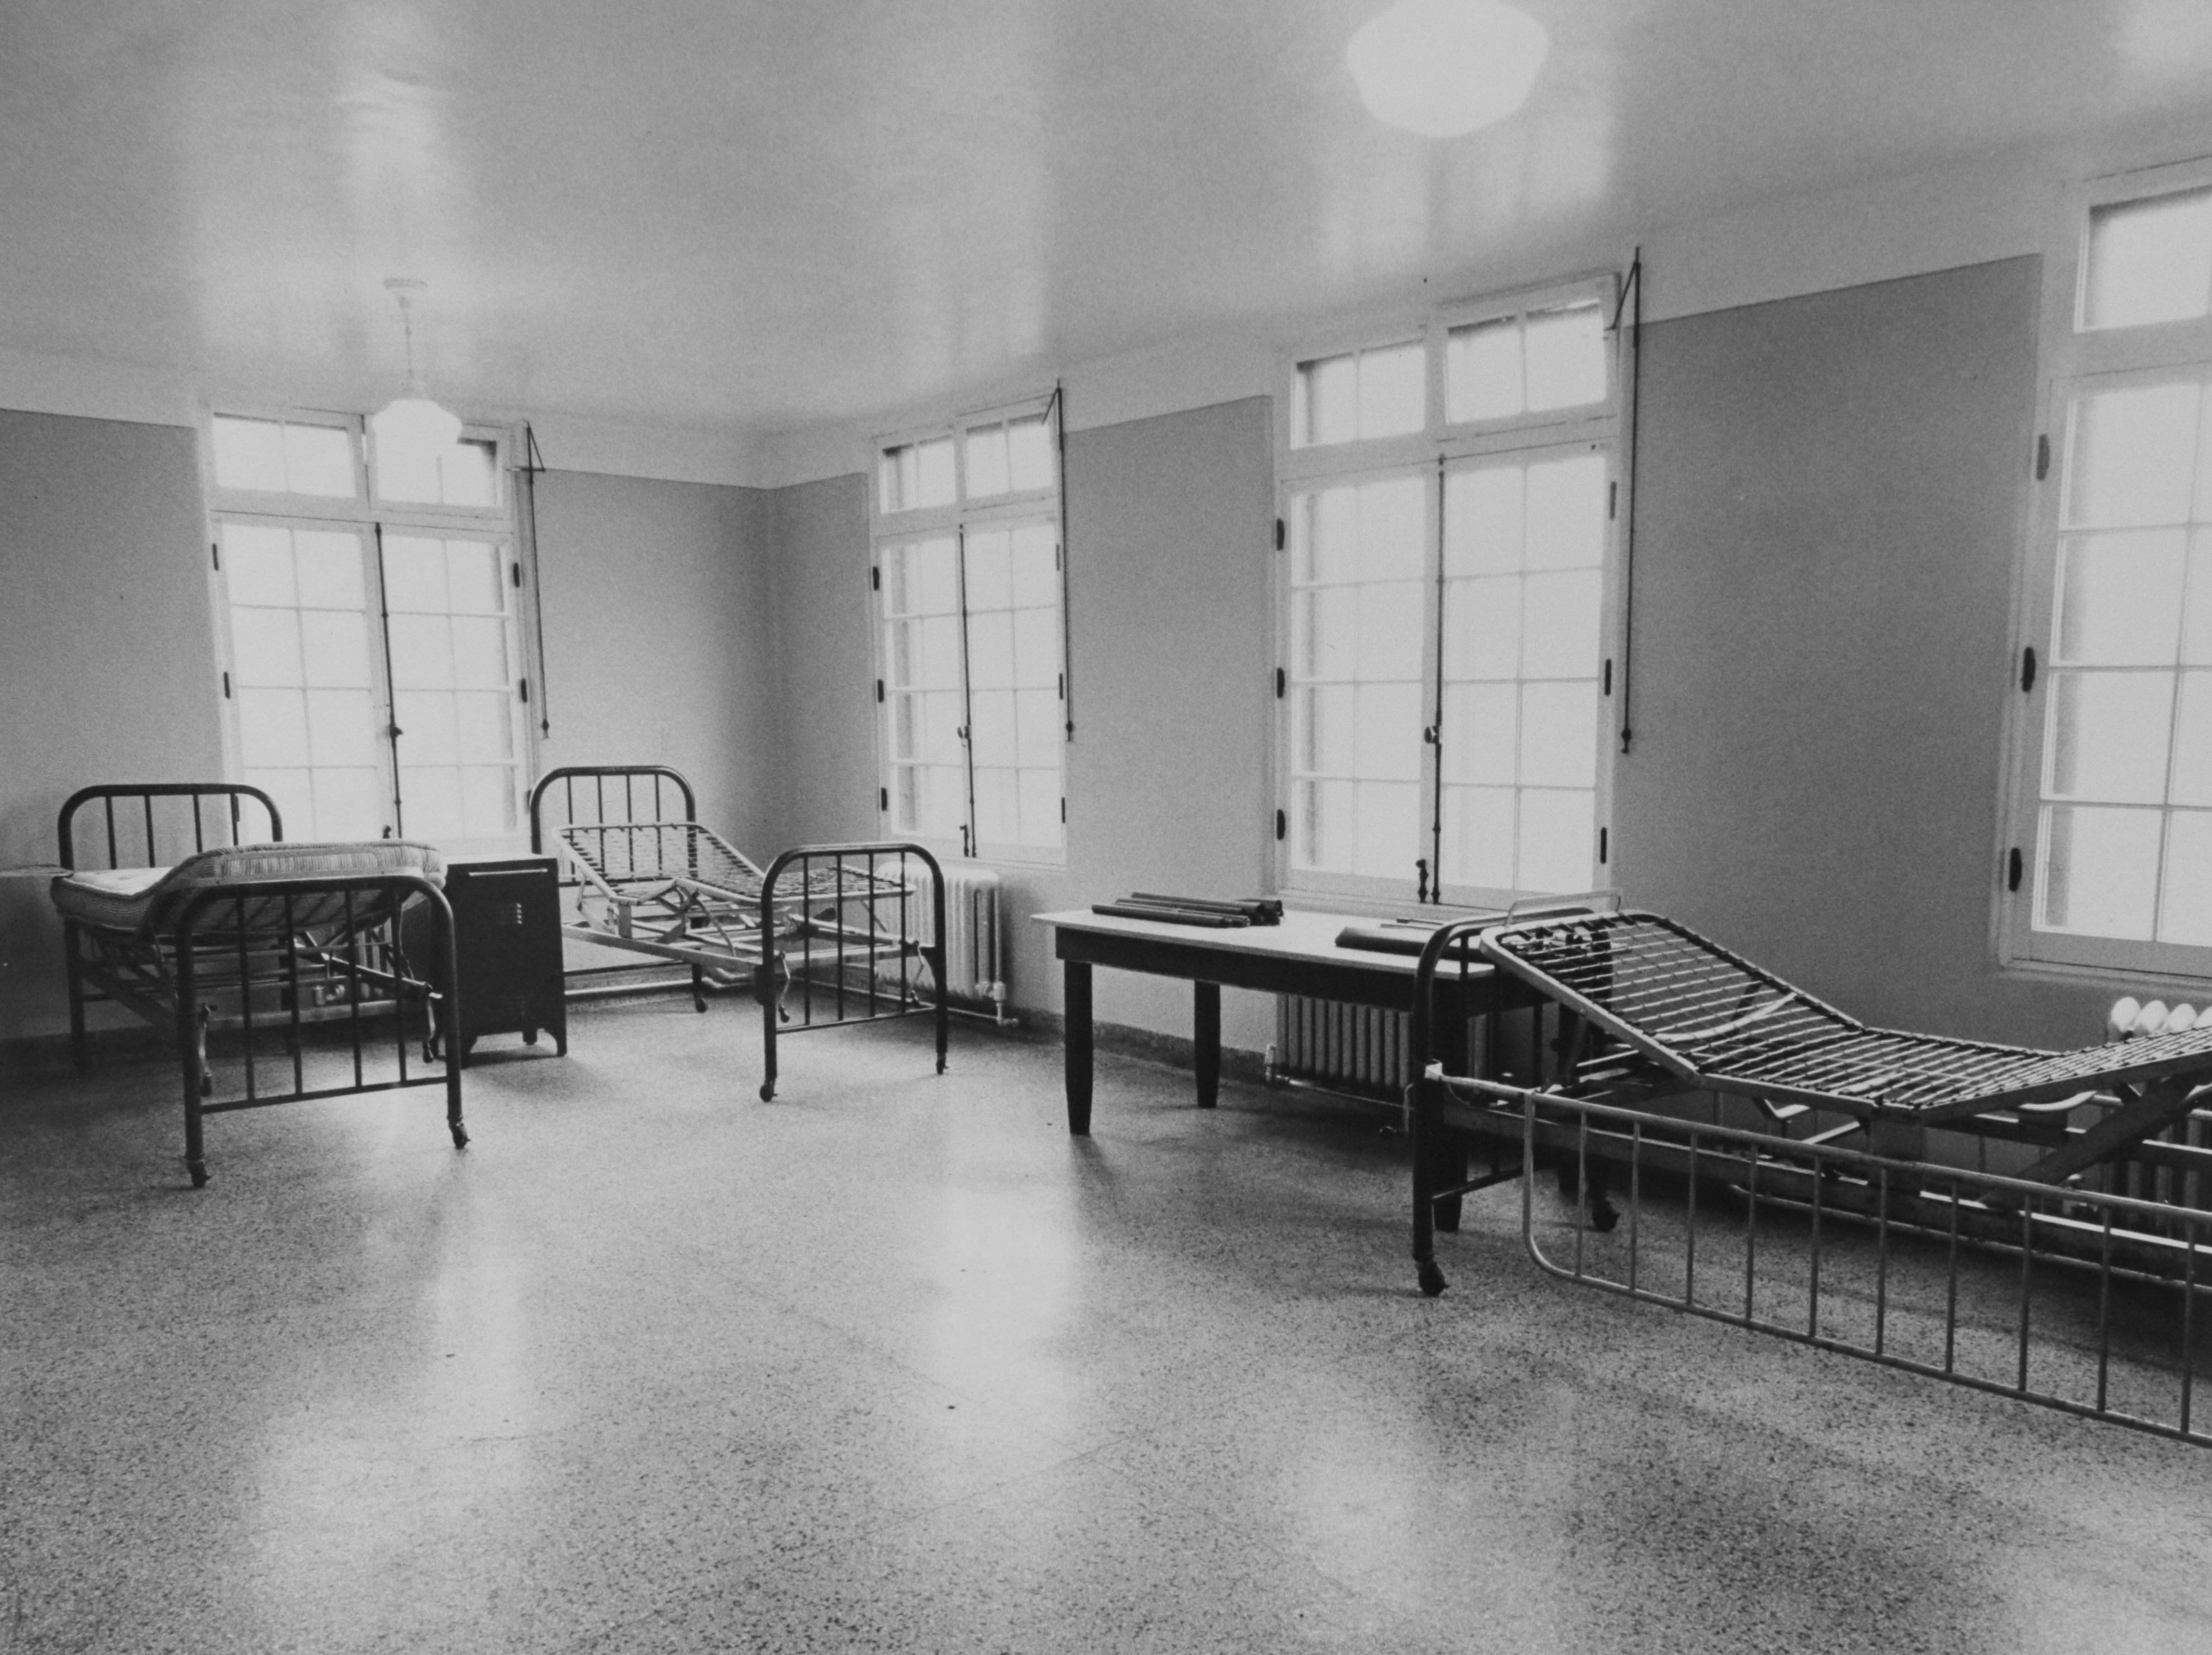 By the 1950s, even though TB patients could be treated with antibiotics fairly easily at home, many were still sent to the sanitarium to be monitored because TB recurrence was so common. (Courtesy North River Commission)